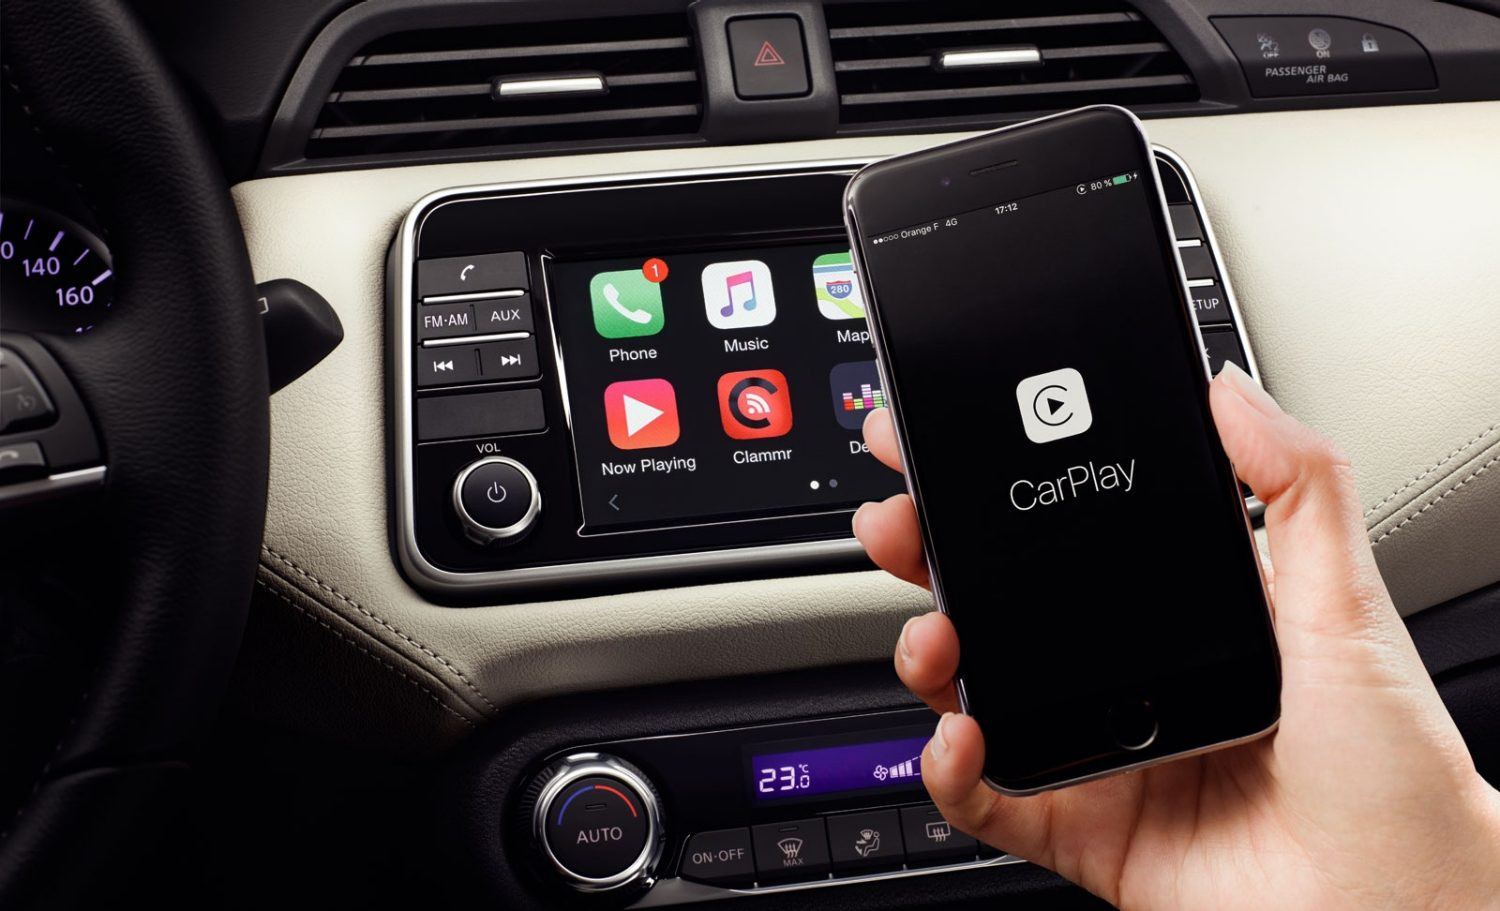 Nissan Micra CarPlay